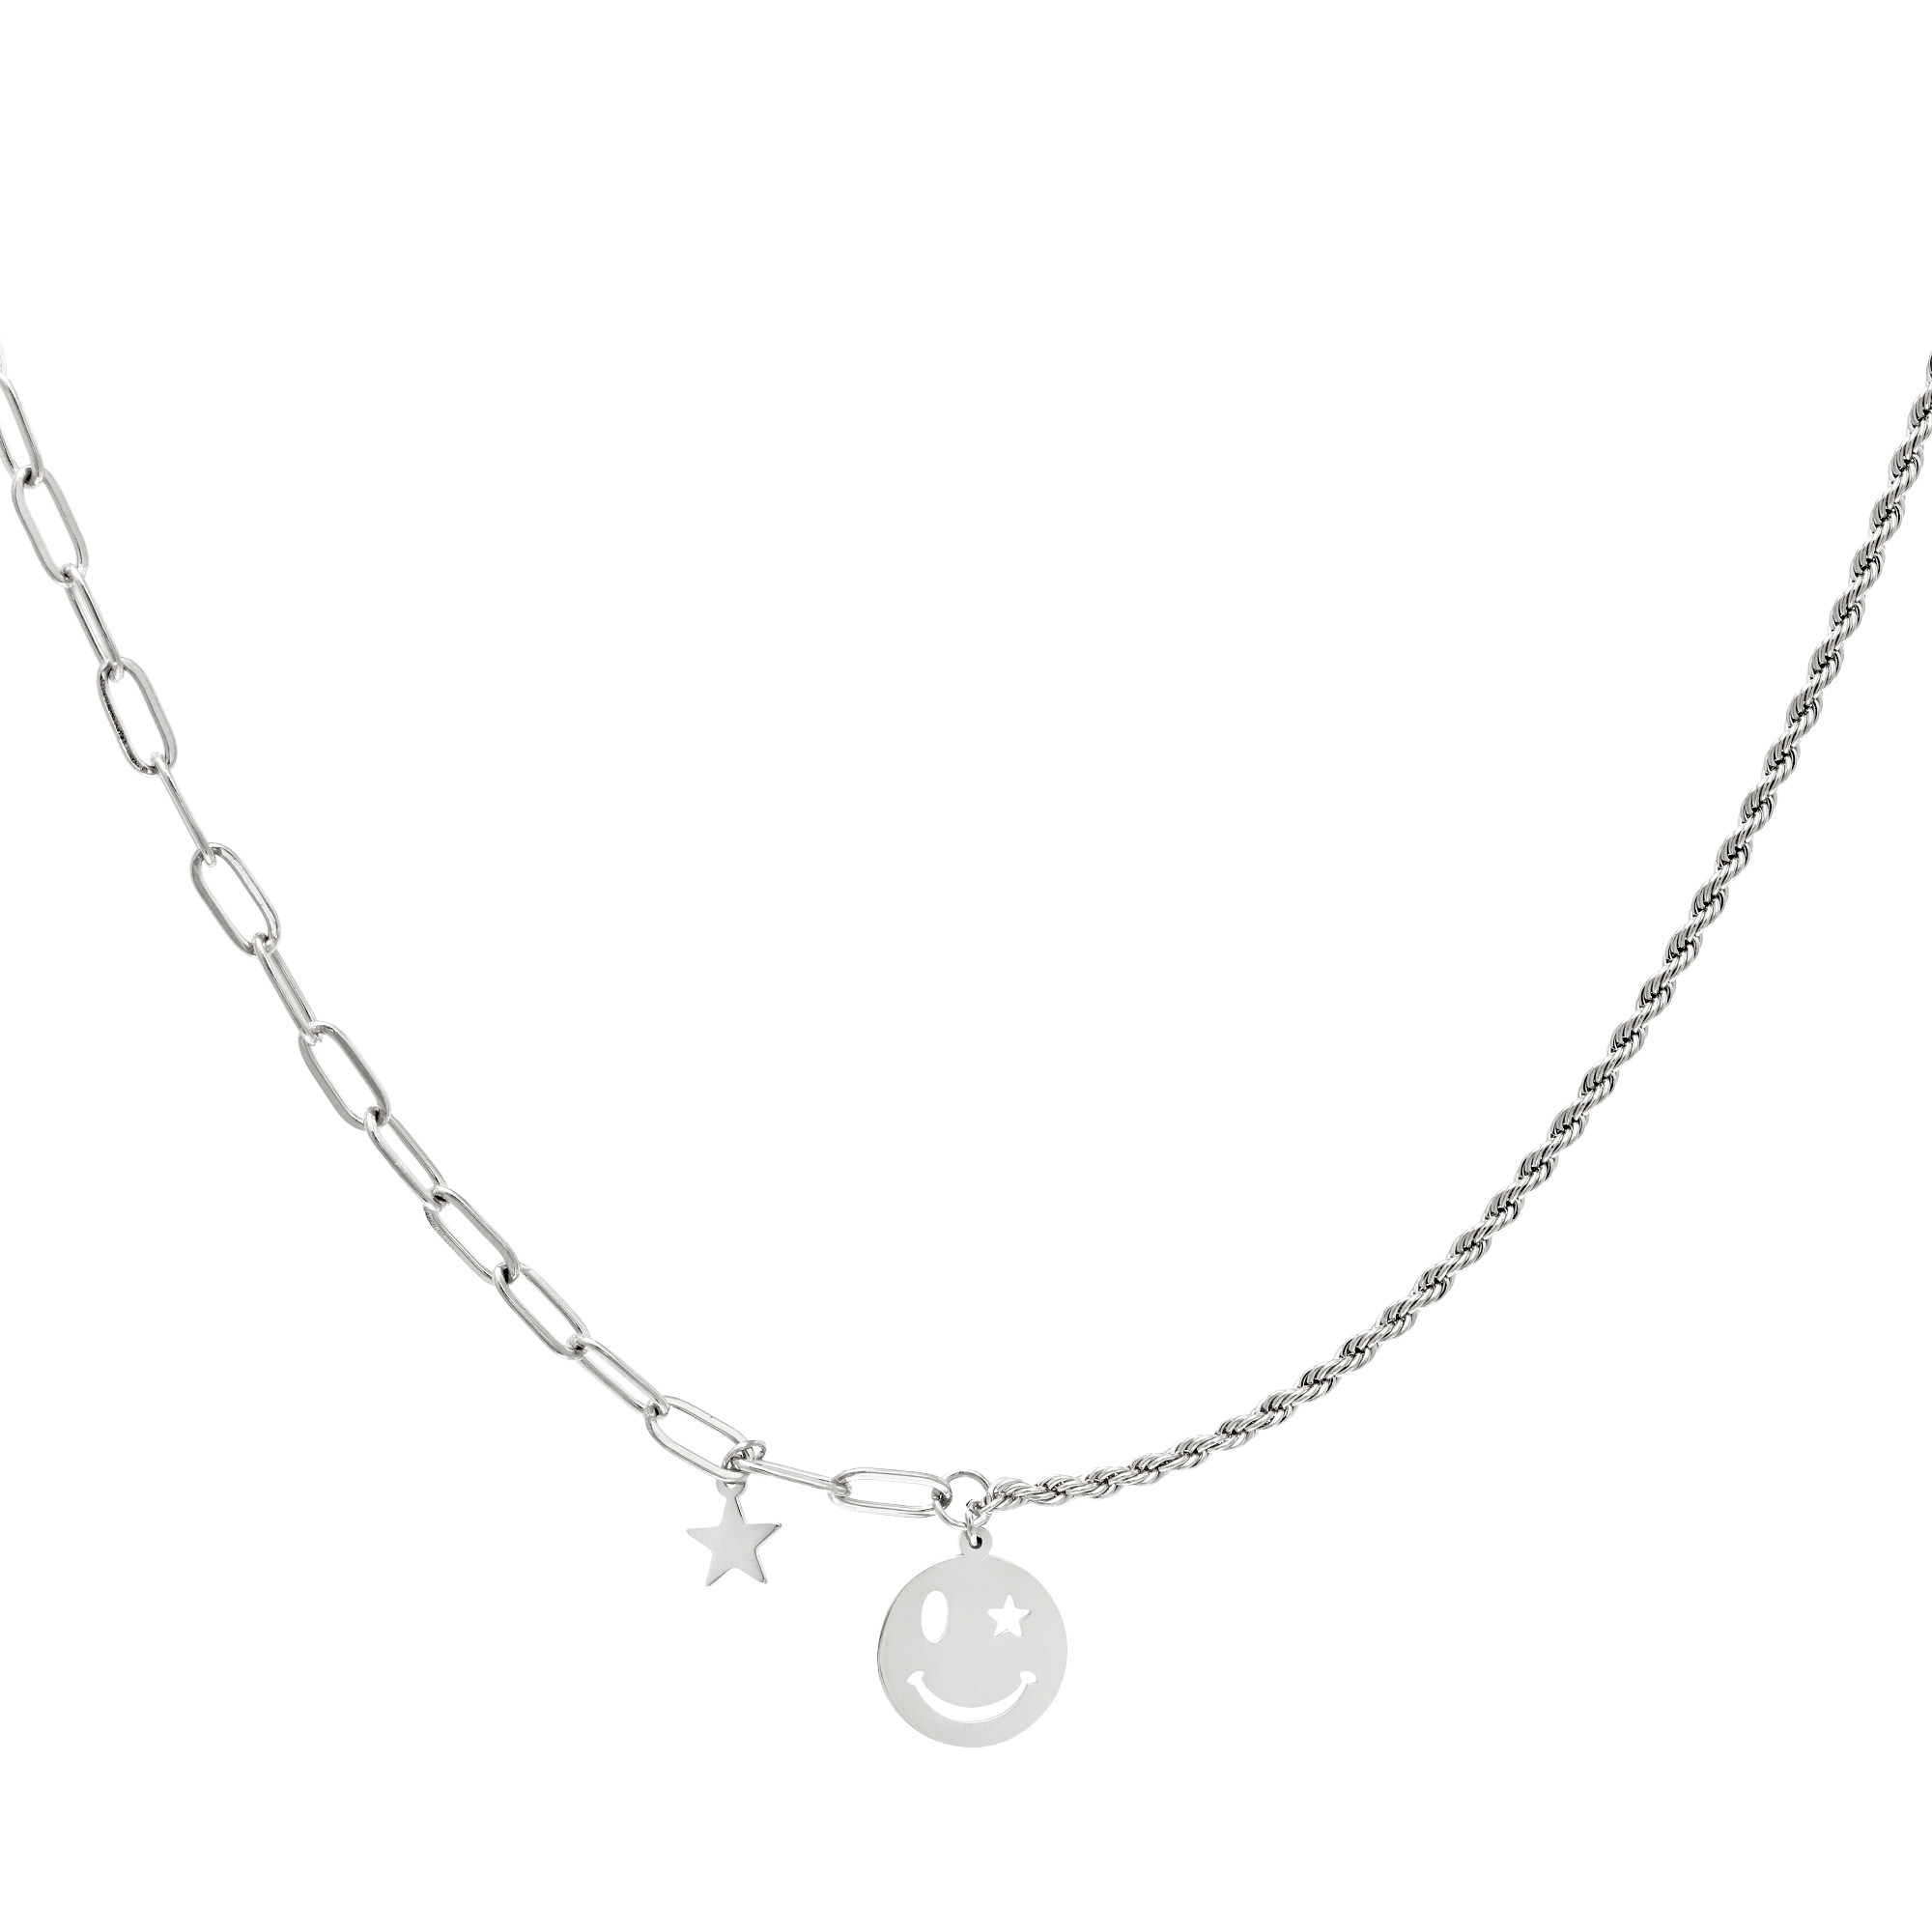 Ketting Smiley Face Zilver